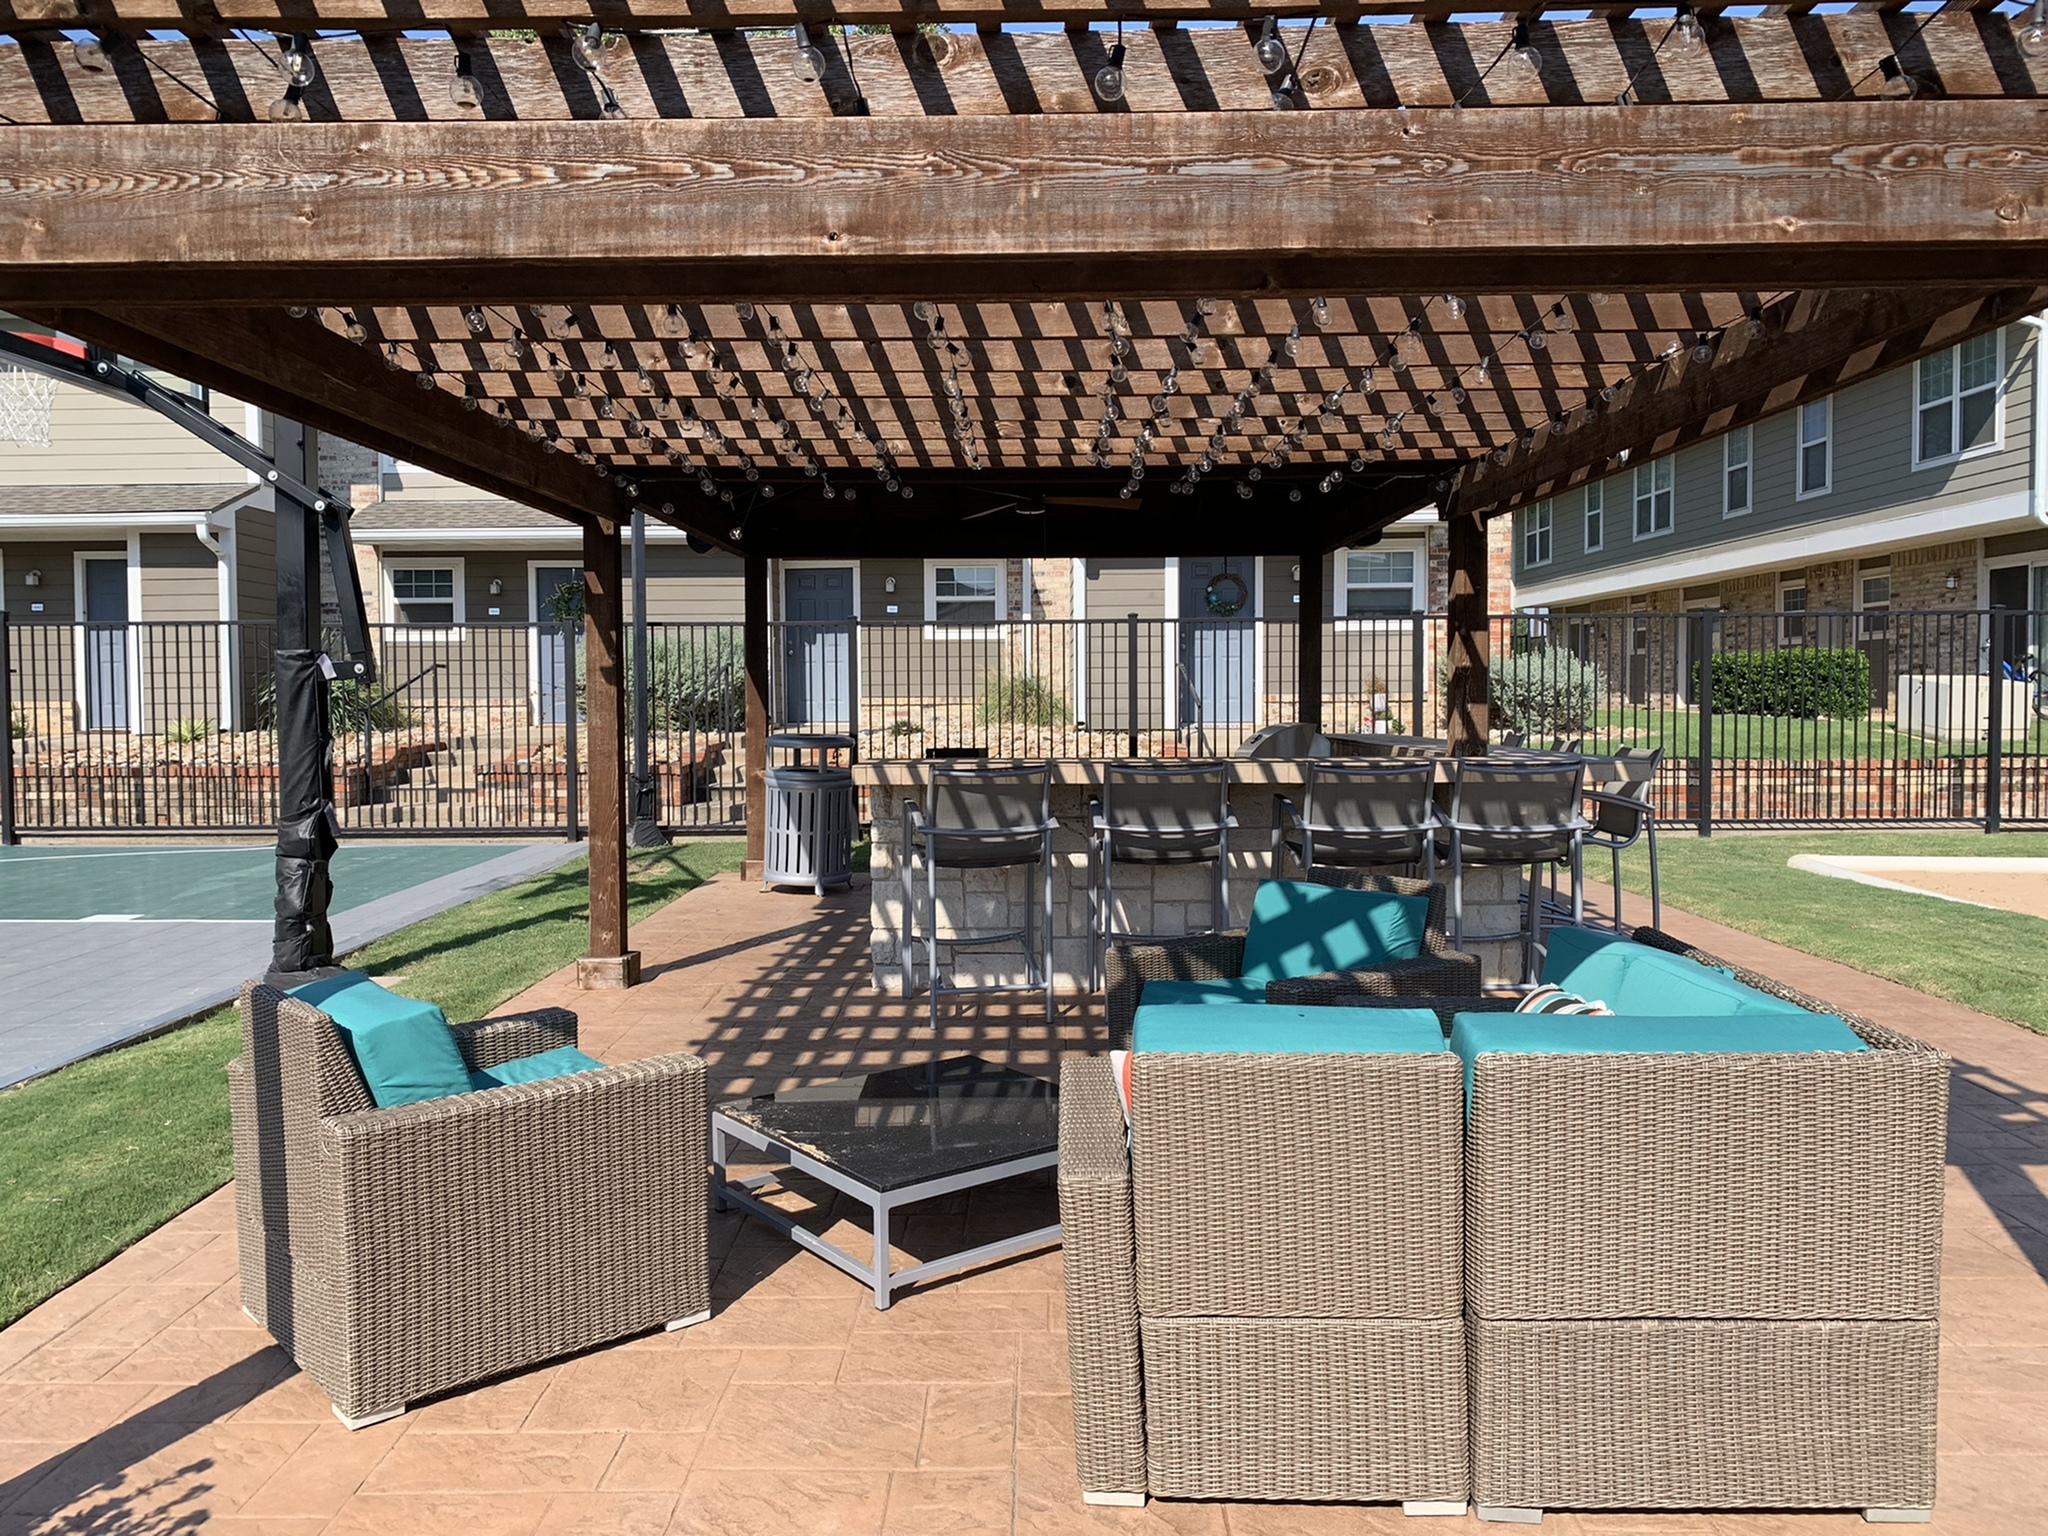 Image of Outdoor Kitchen and Lounge Areas for The Venue